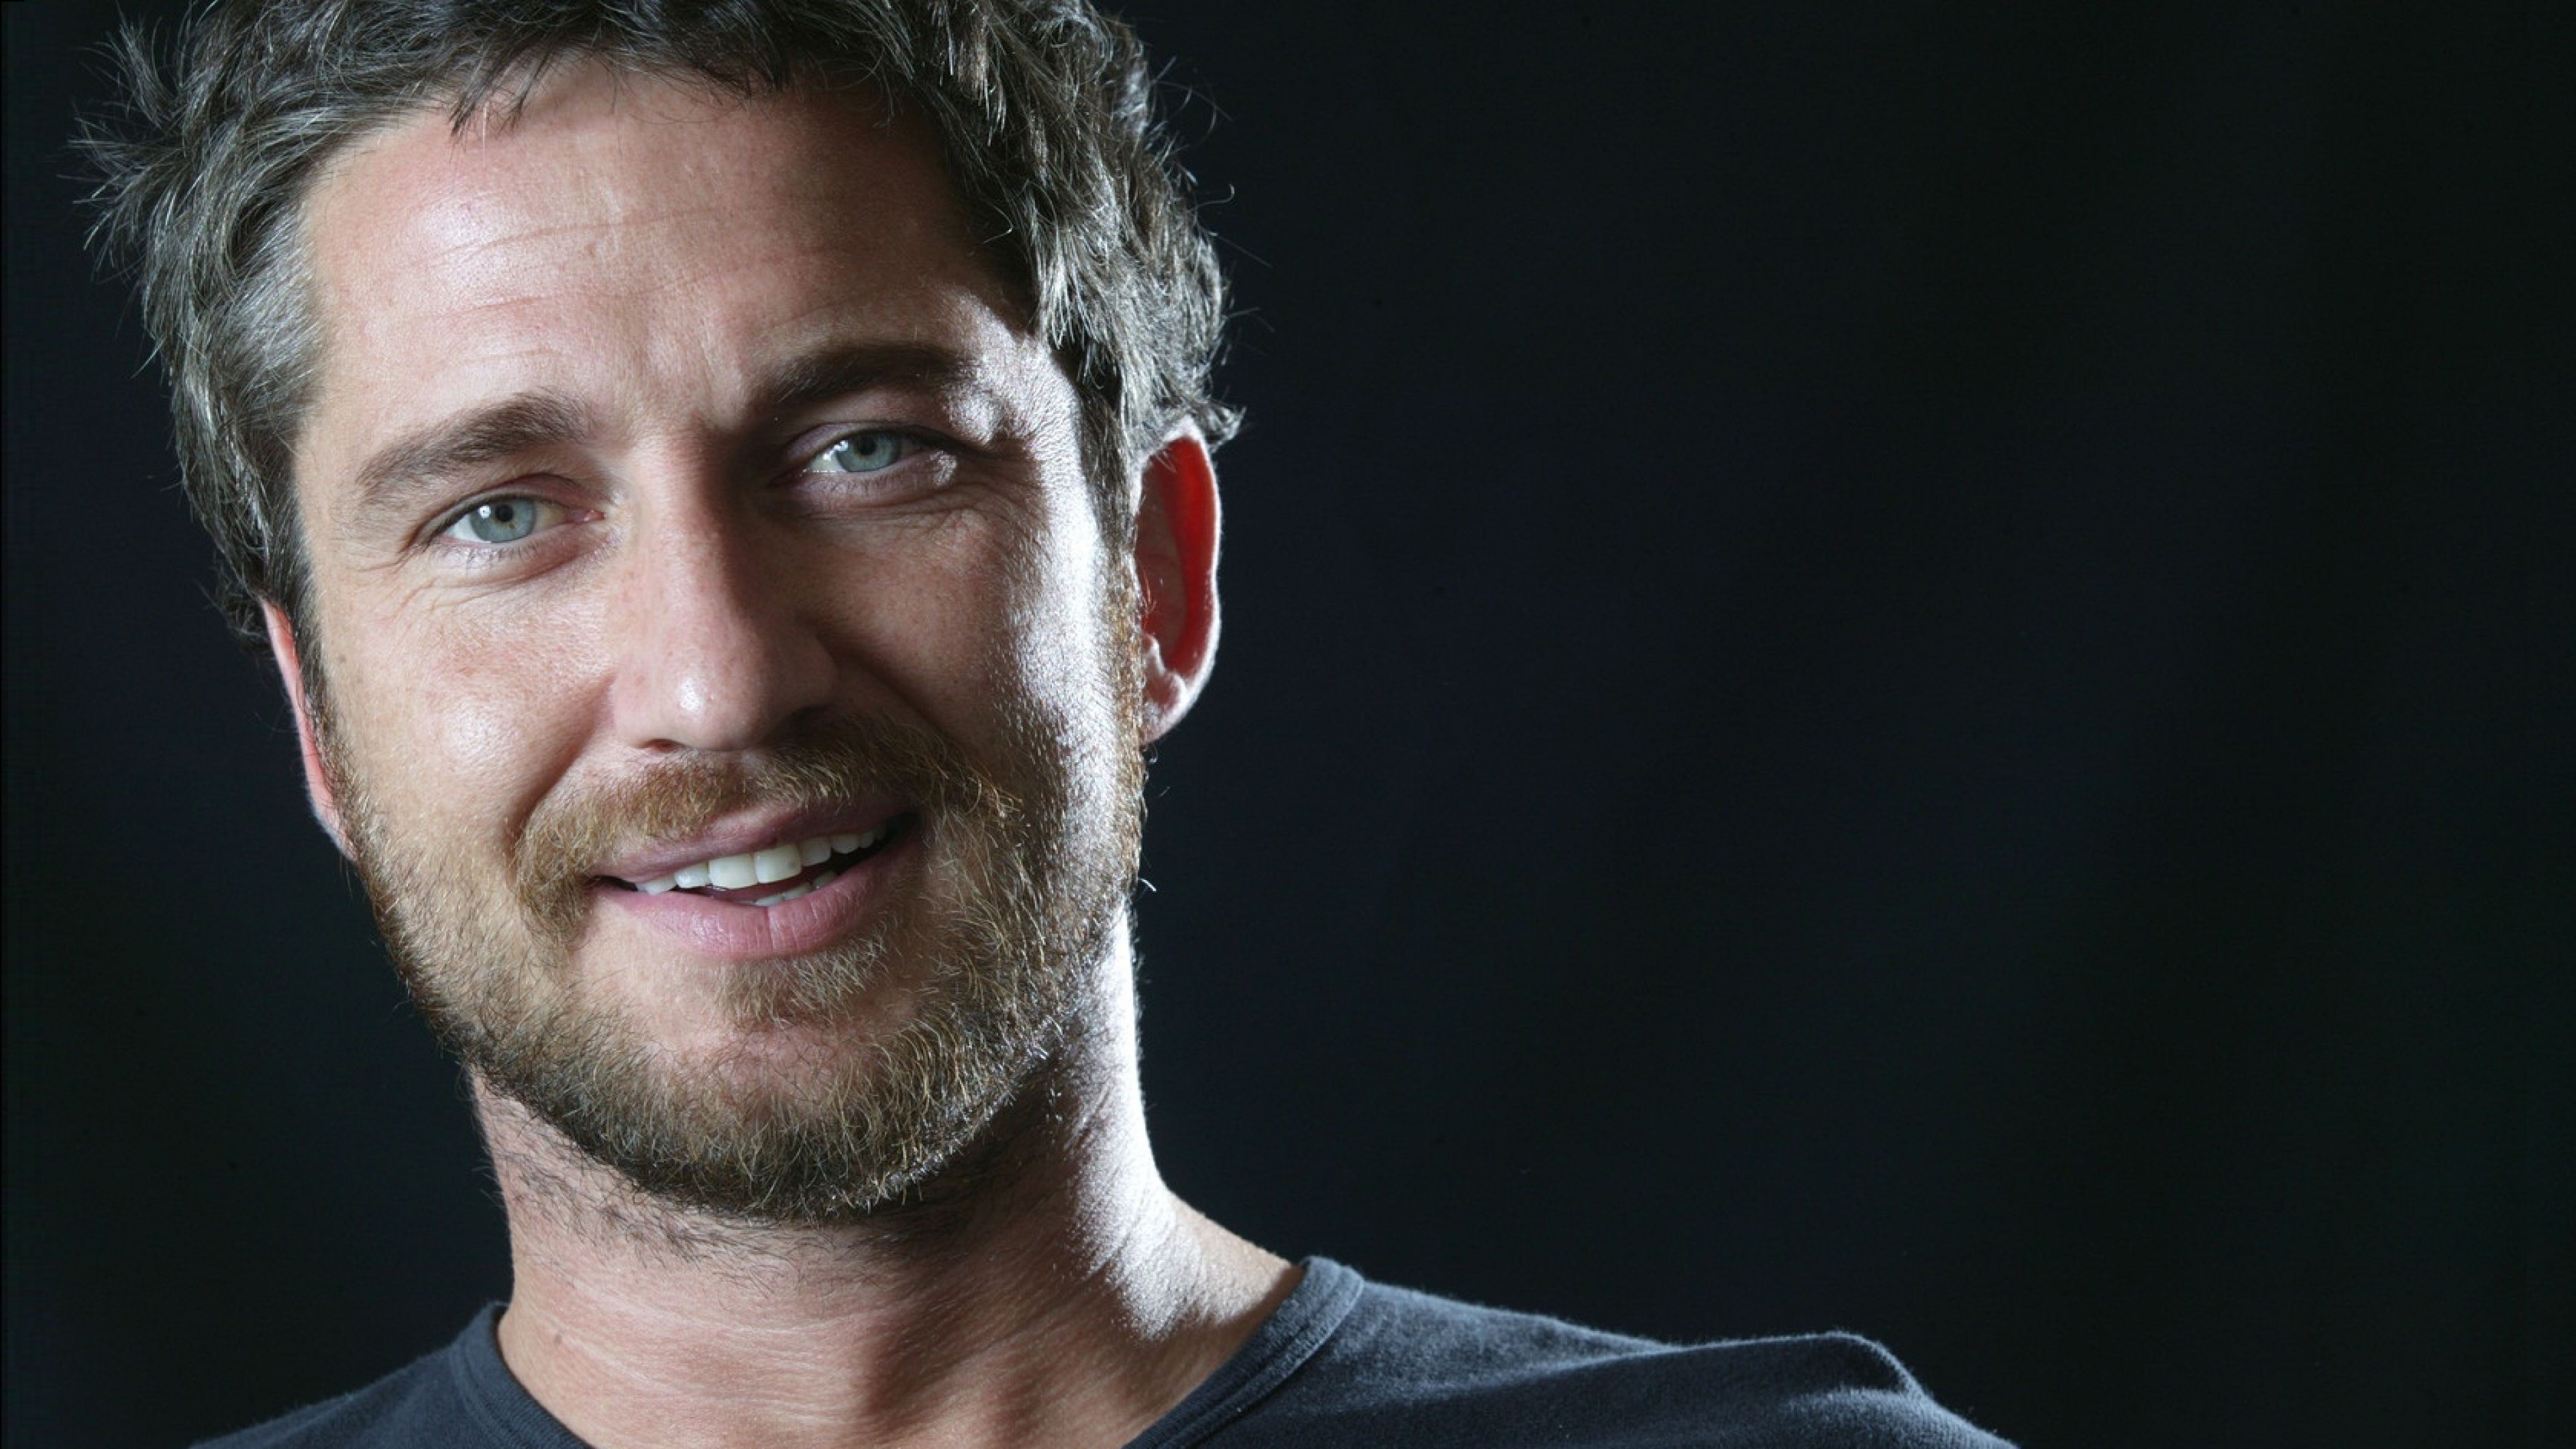 Gerard Butler Wallpapers High Resolution and Quality Download Gerard Butler